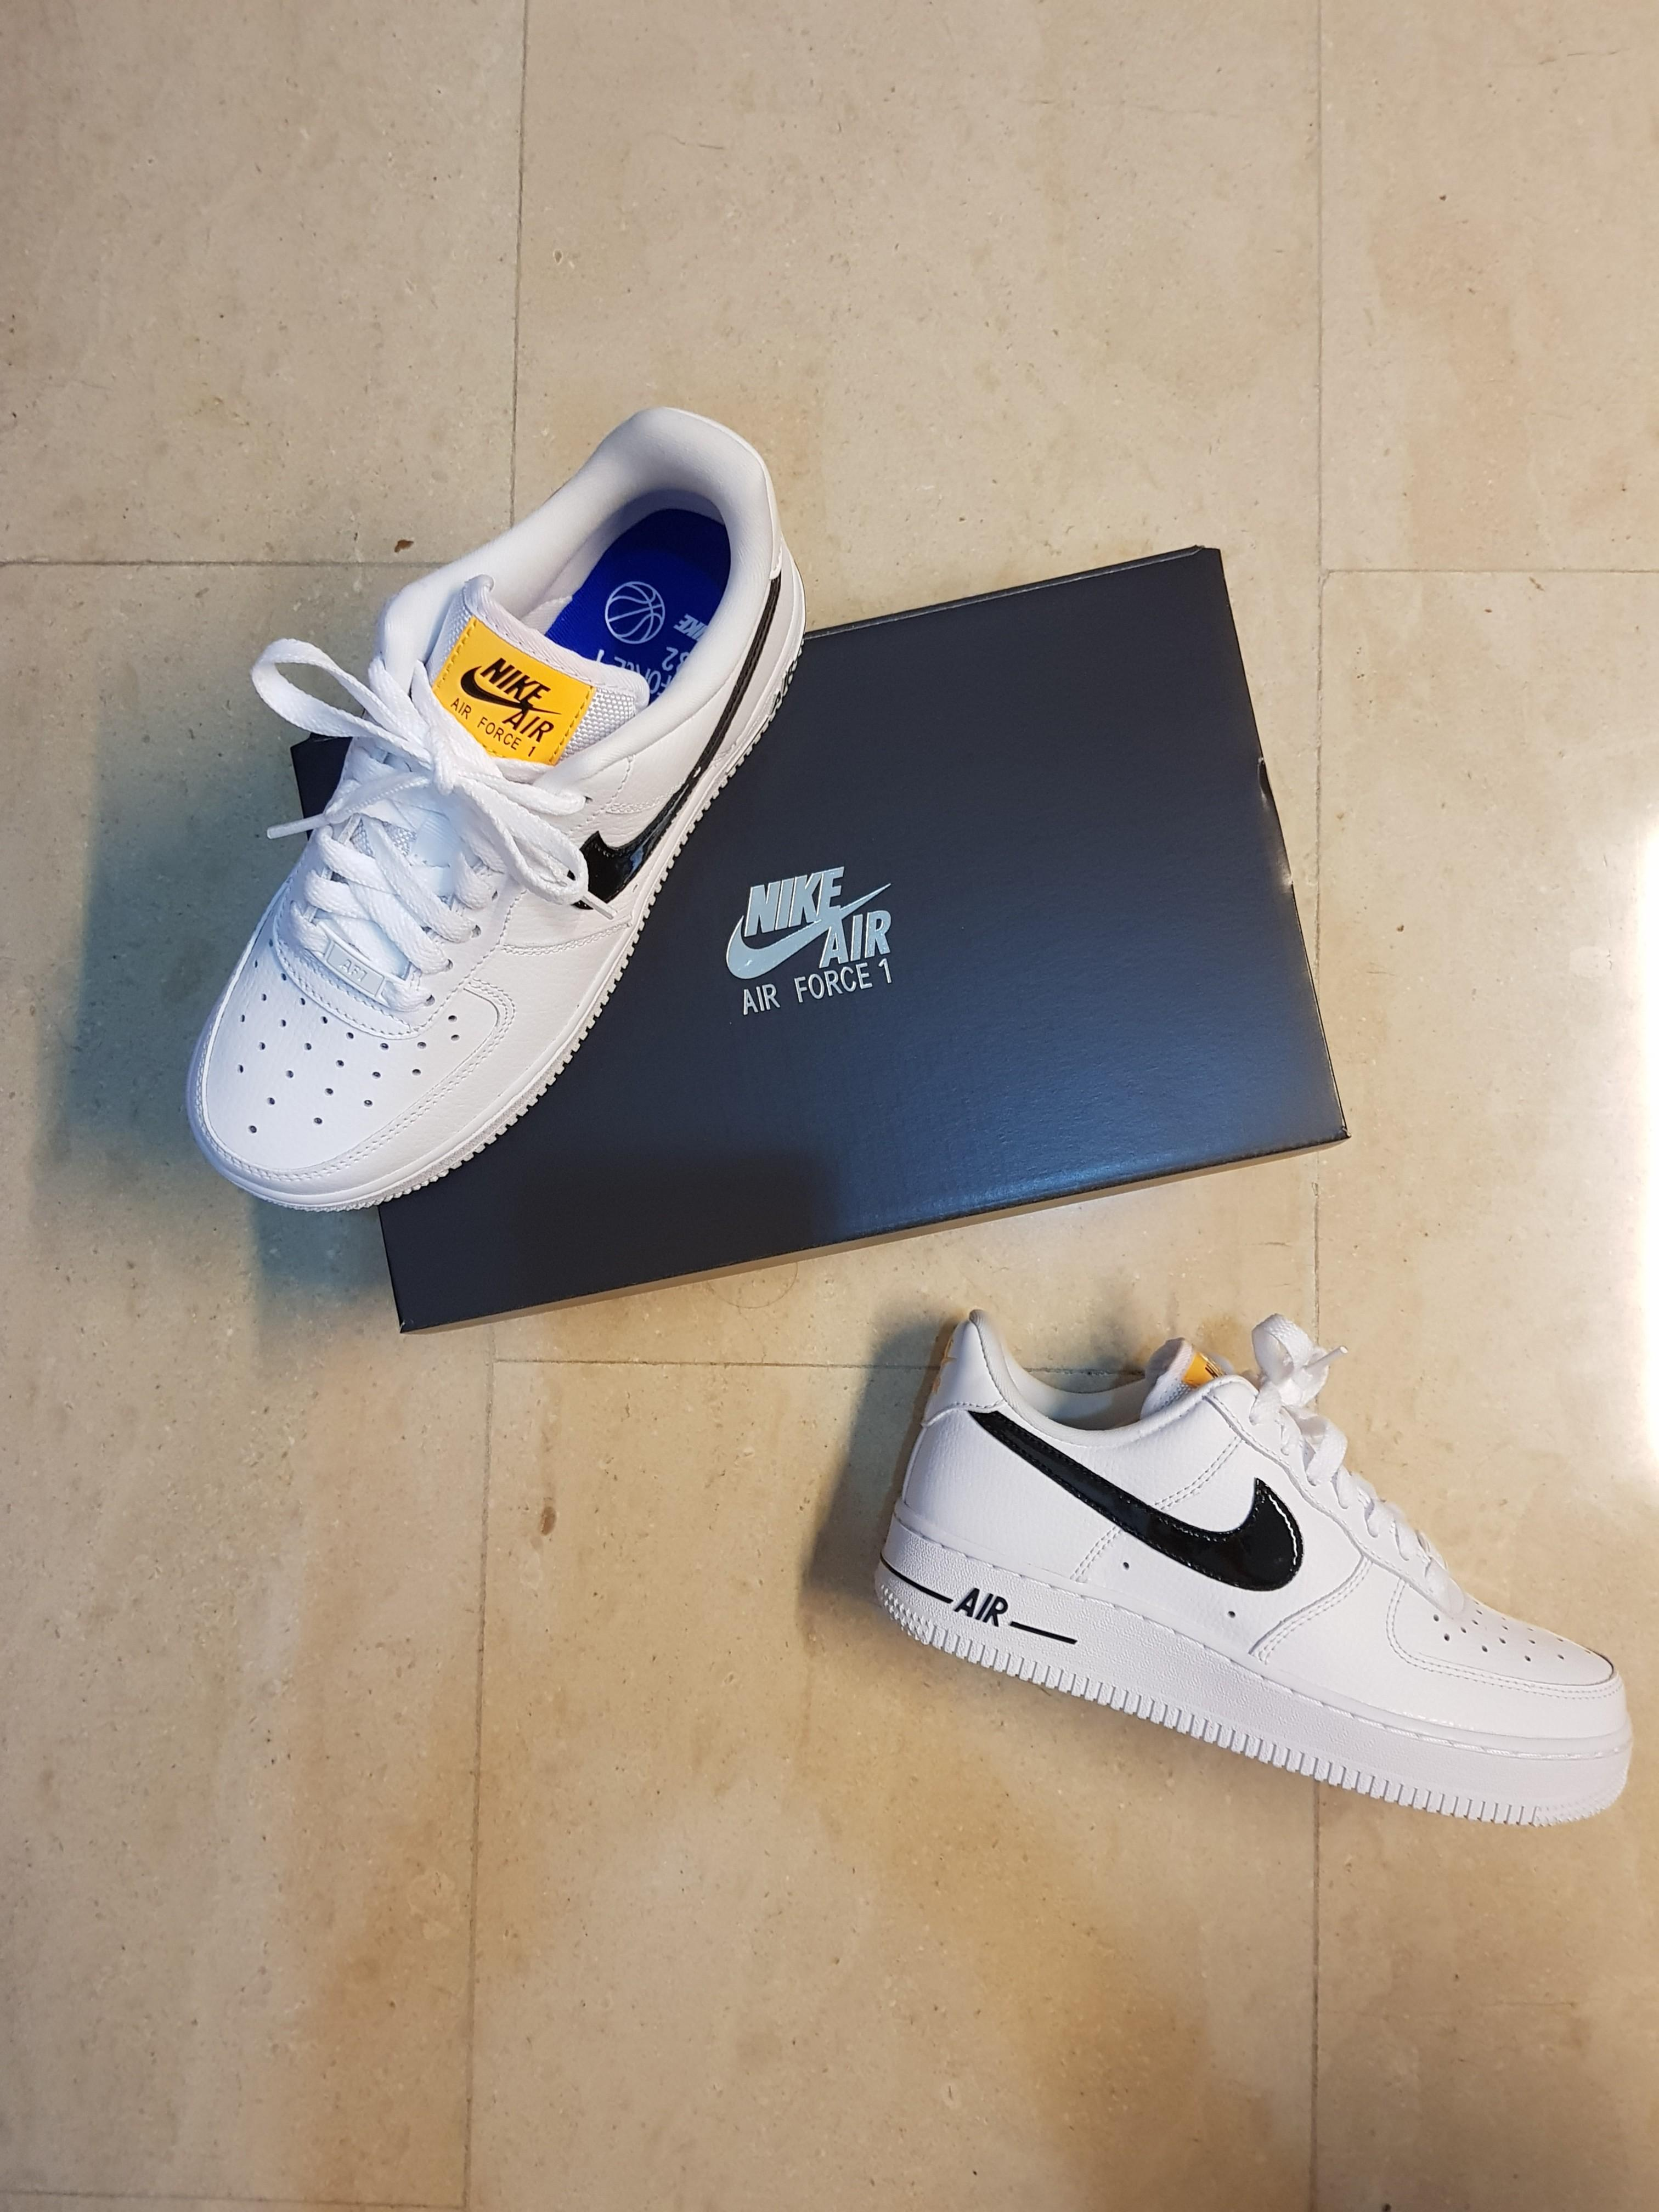 Nike Air Force 1 (Limited Edition